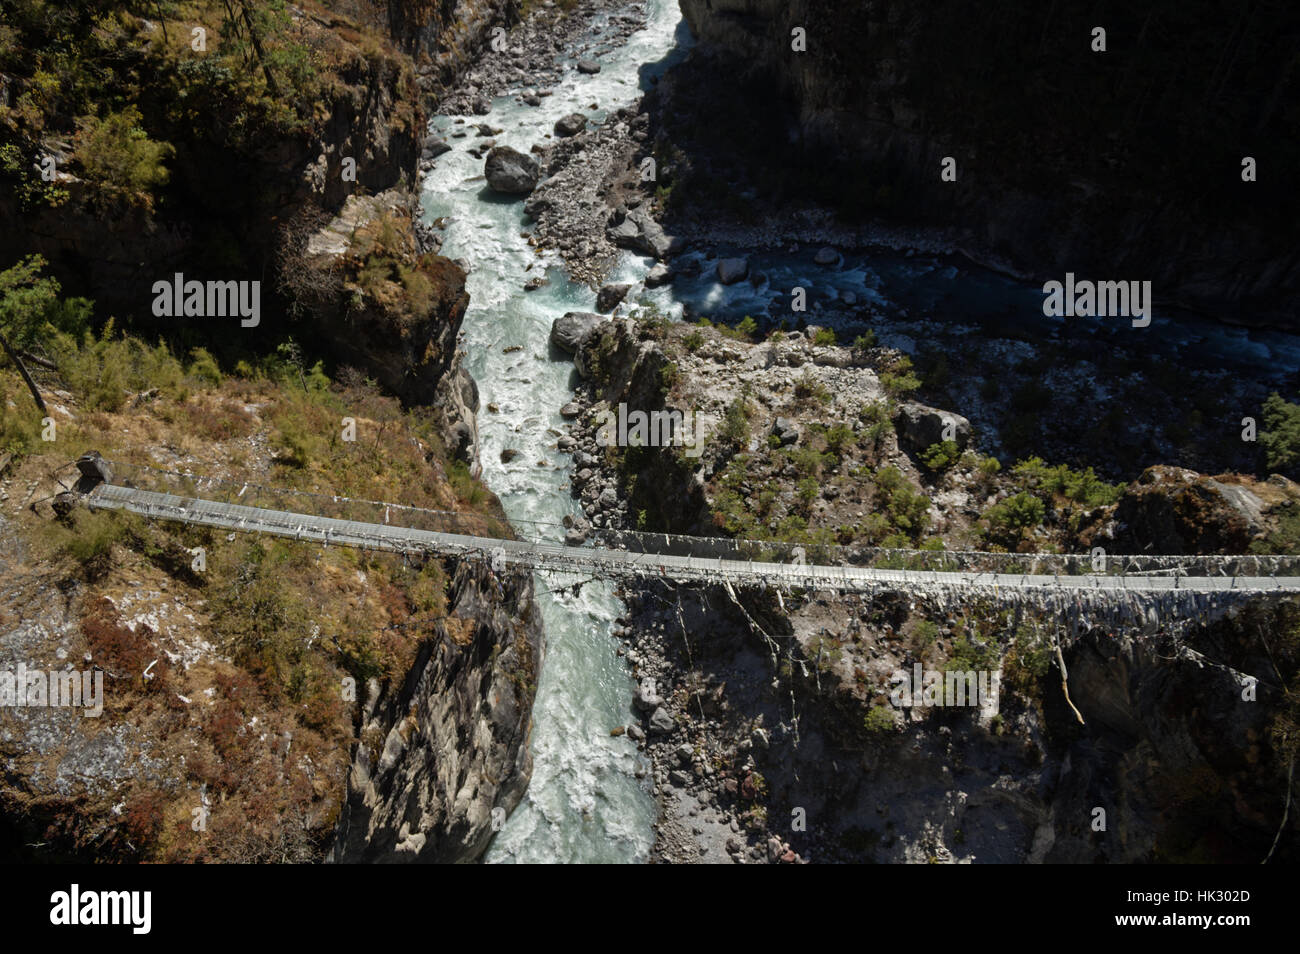 the old Larche Dibhan bridge over the Dudh Khosi River on the trek up to Namche Bazar in Nepal - Stock Image